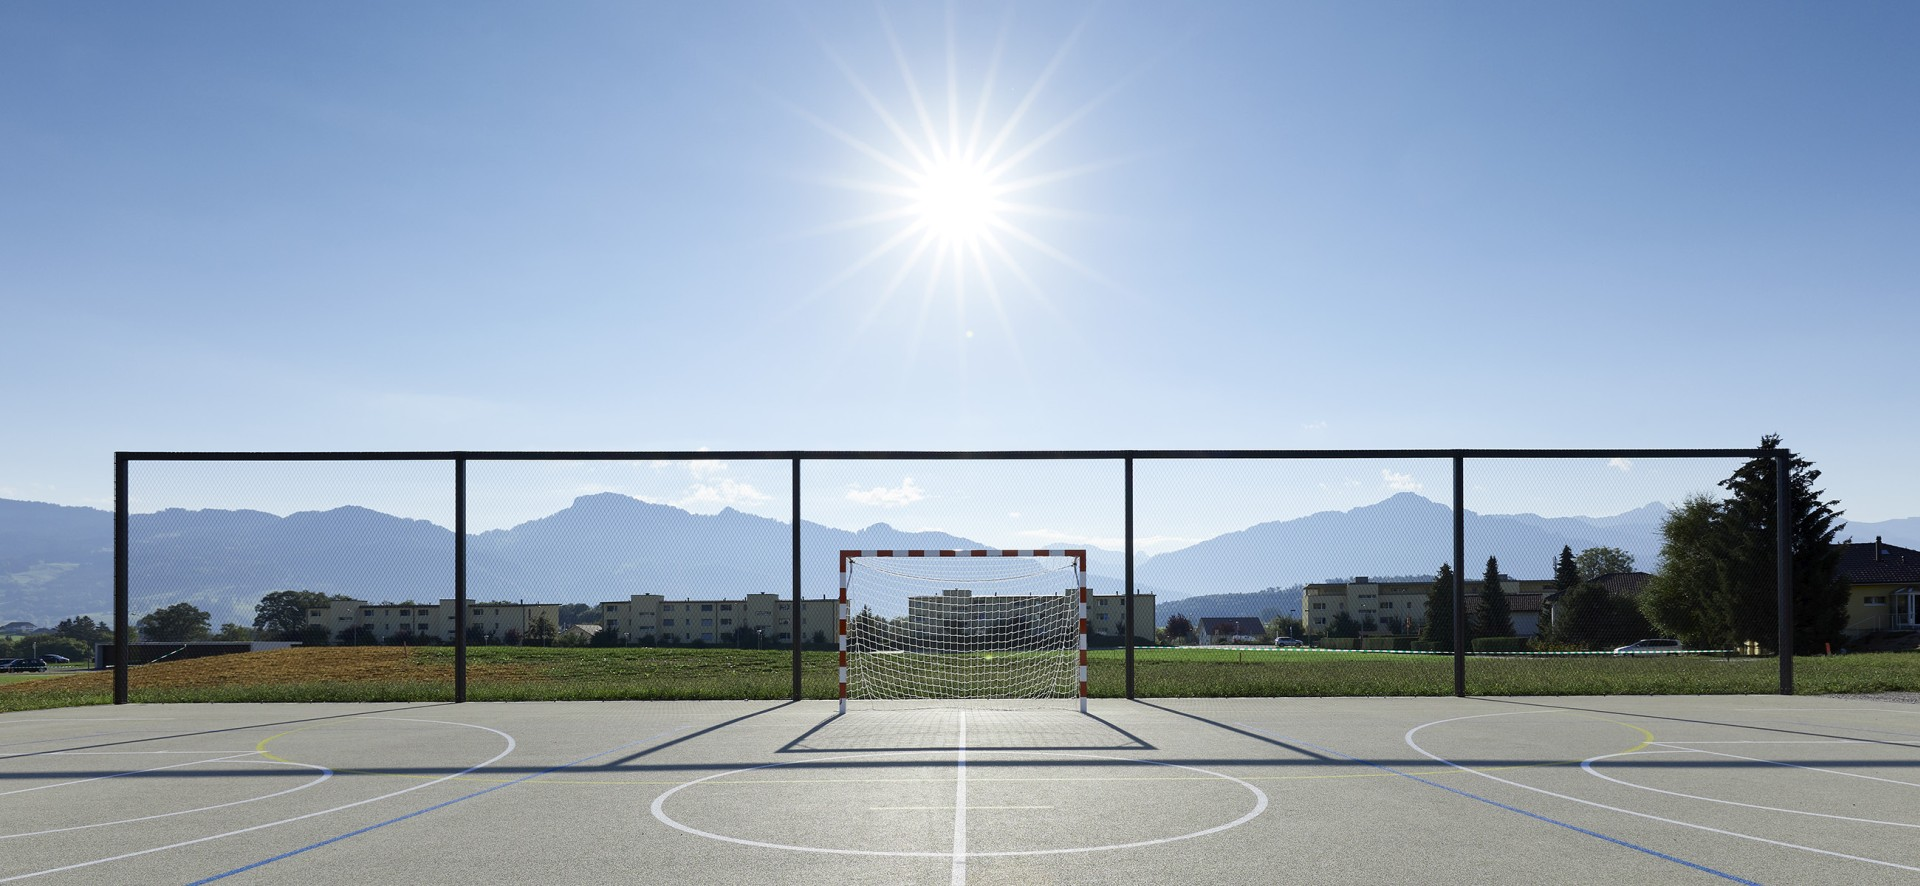 sports court with modern ball stop fence made of webnet